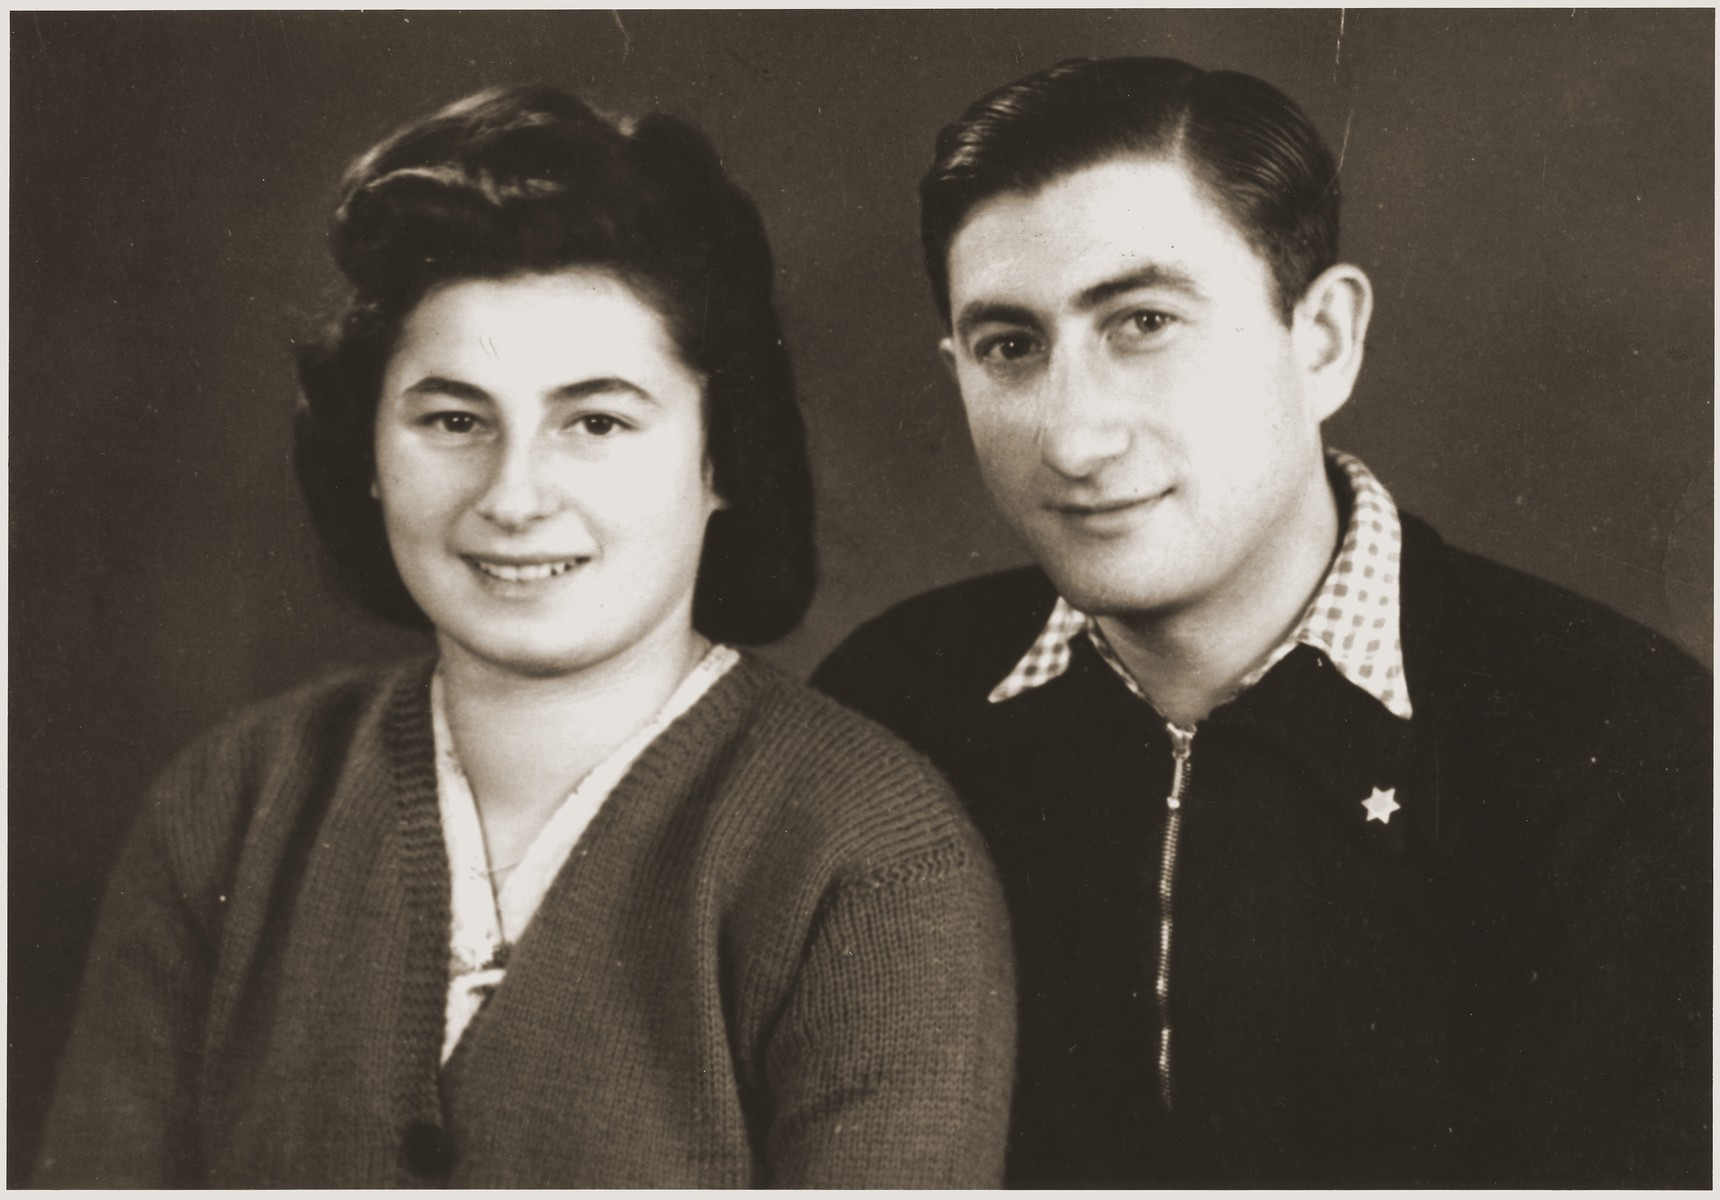 Studio portrait of two young Jewish DPs in the New Palestine displaced persons camp near Salzburg.  Pictured are Halina Goldberg, a survivor of the death march from Helbrechts to Volary, and Moniek Rozen.